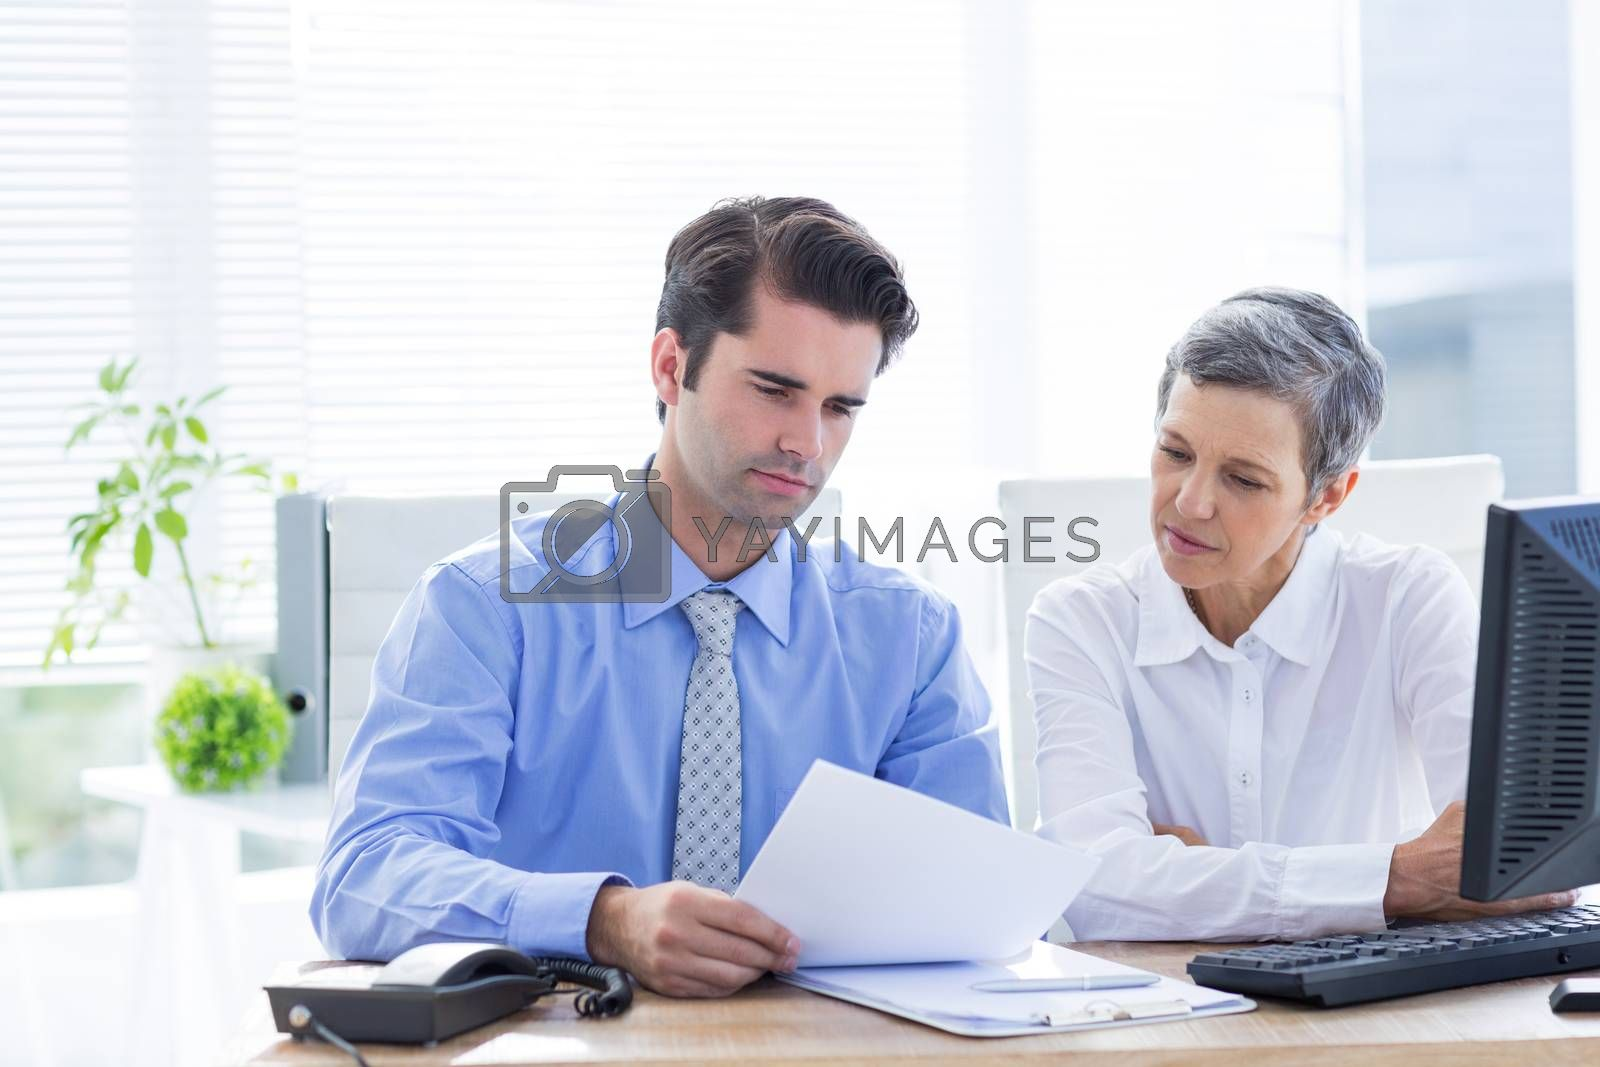 Royalty free image of Two business people looking at a paper while working on computer  by Wavebreakmedia